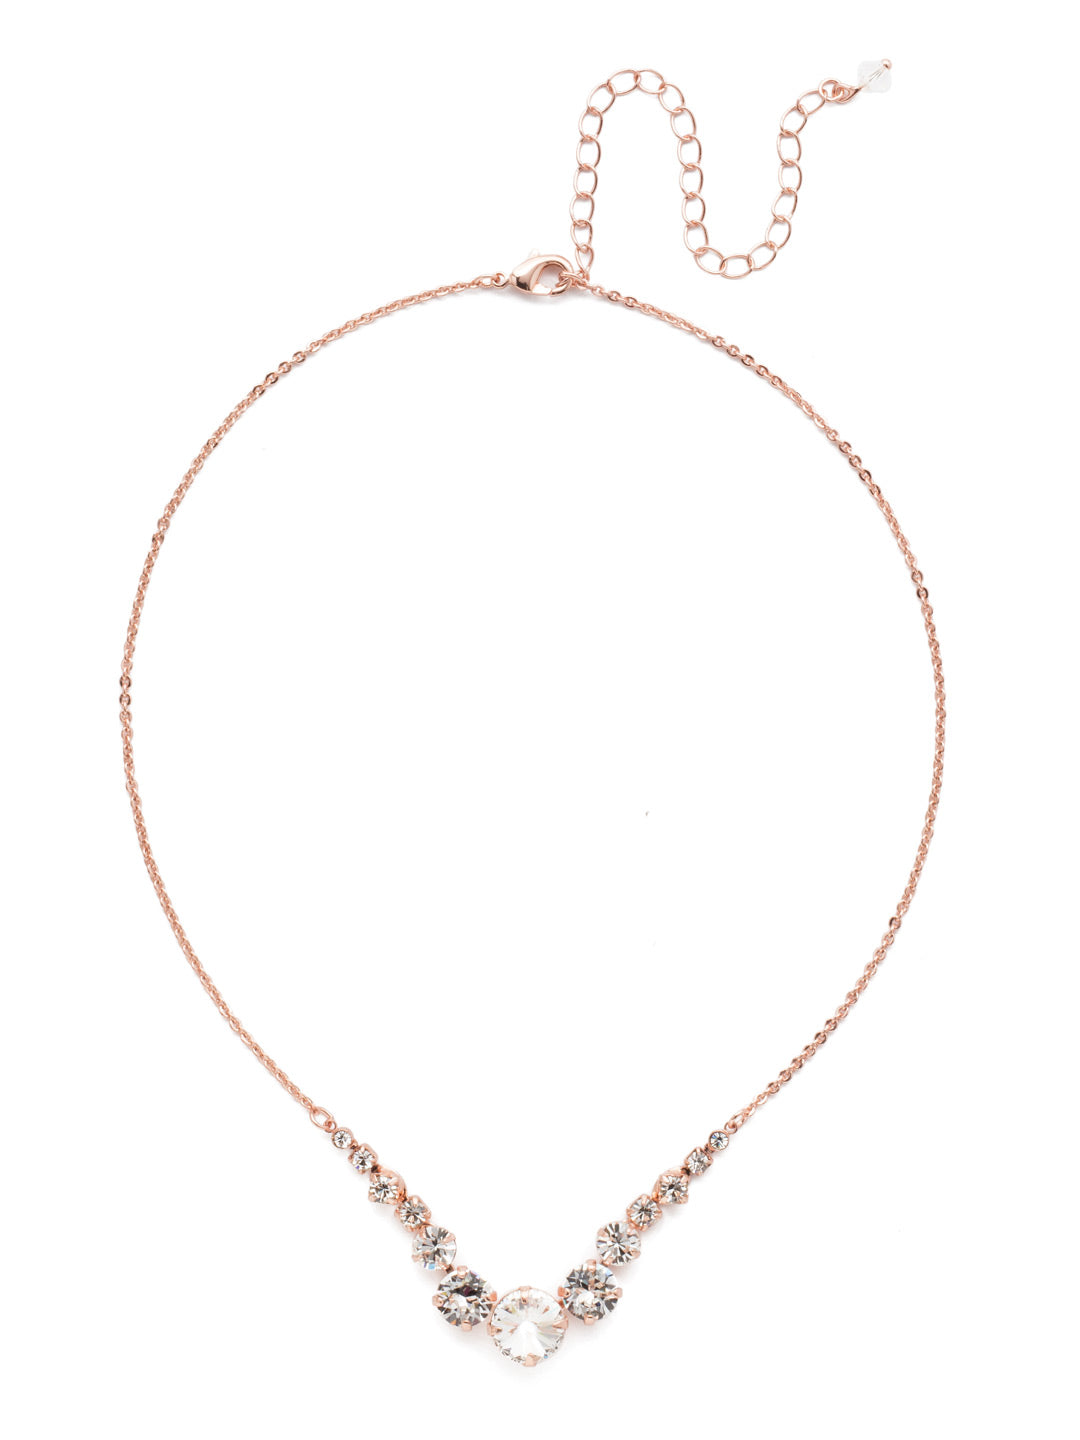 Delicate Round Tennis Necklace - NCQ14RGCRY